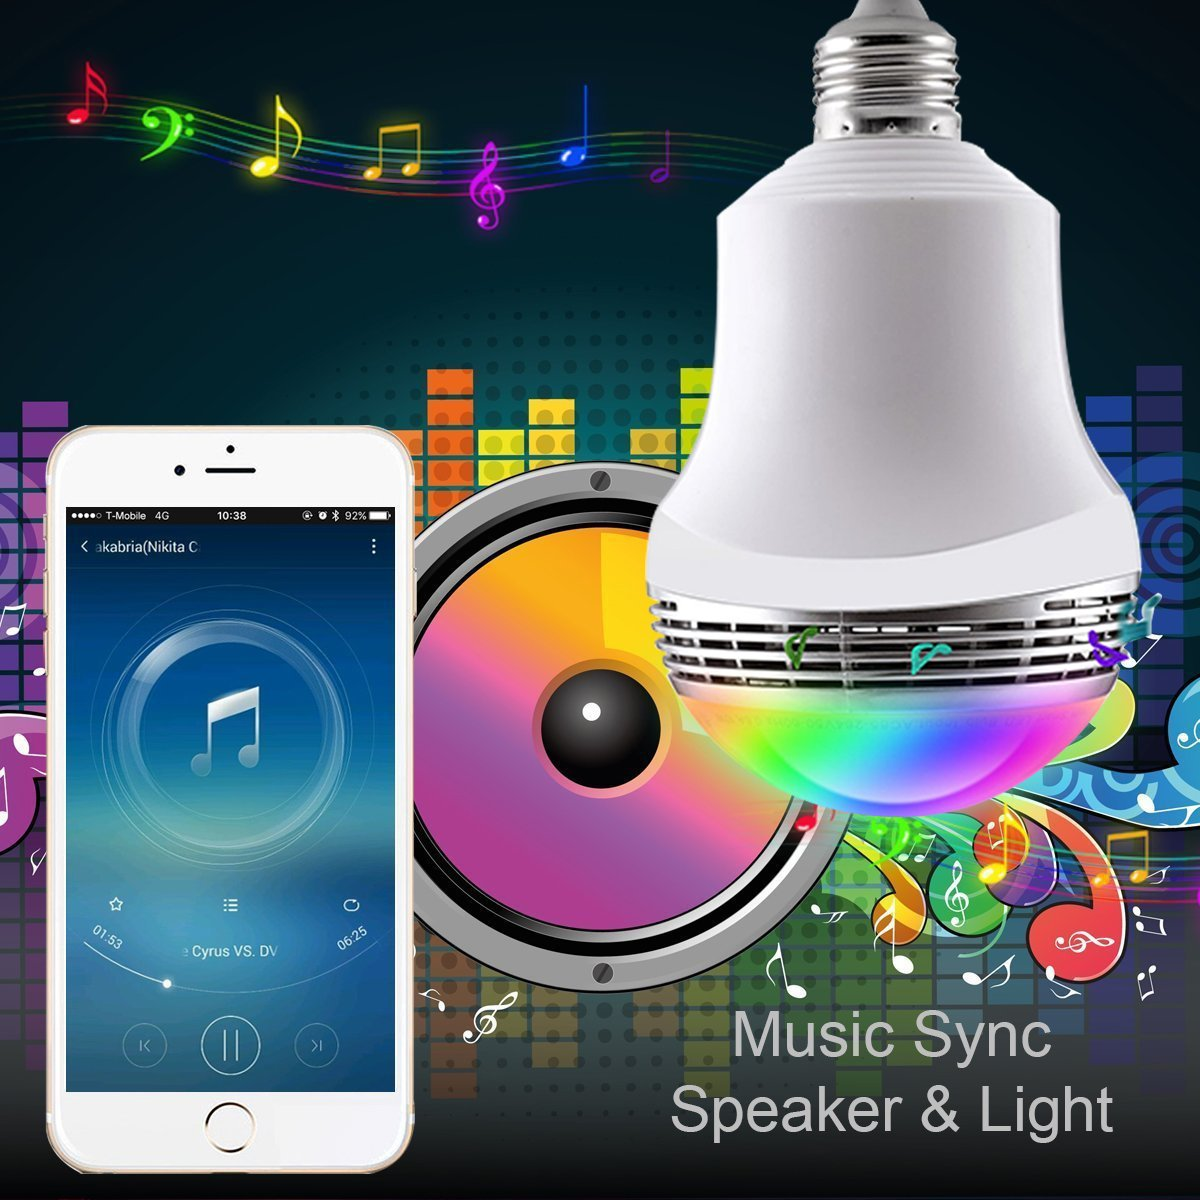 XPLUS Smart LED Bulb Speaker, 2rd Wireless Bluetooth 4.0 Speaker Music LED Playbulb E26/E27 Dimmable RGB LED Light Bulb for Party Decoration Lighting Free APP for iOS iPhone Android Smartphone 6 Watts